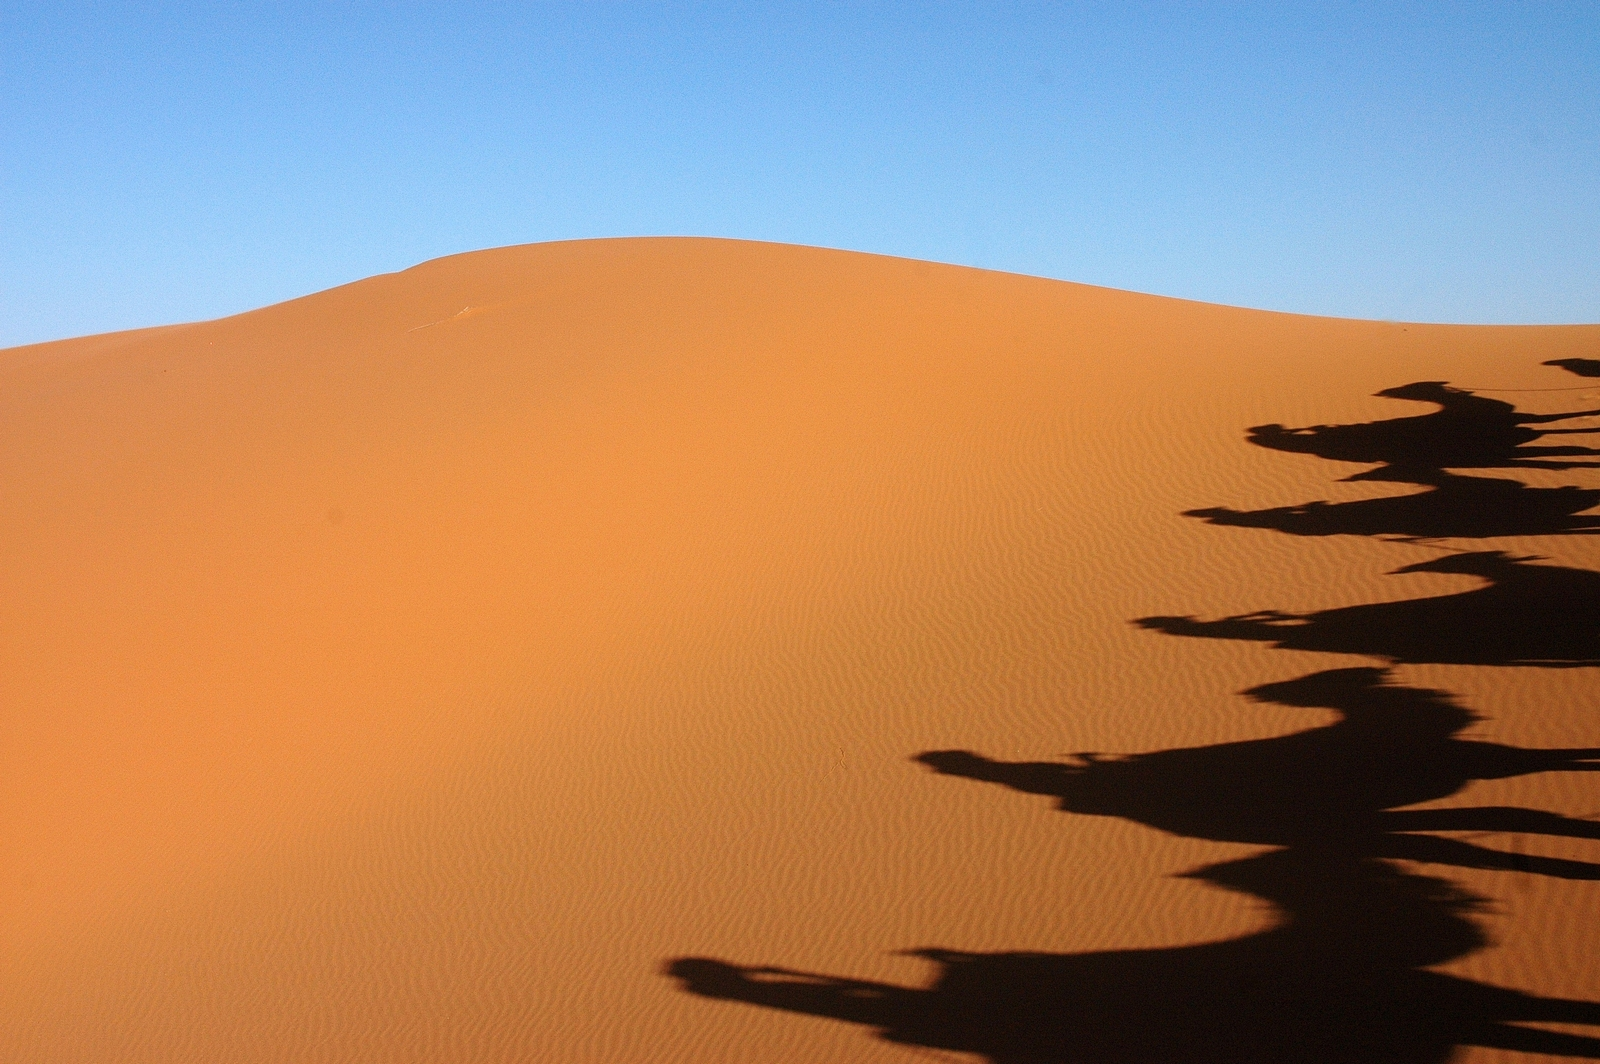 Shadows in the desert...